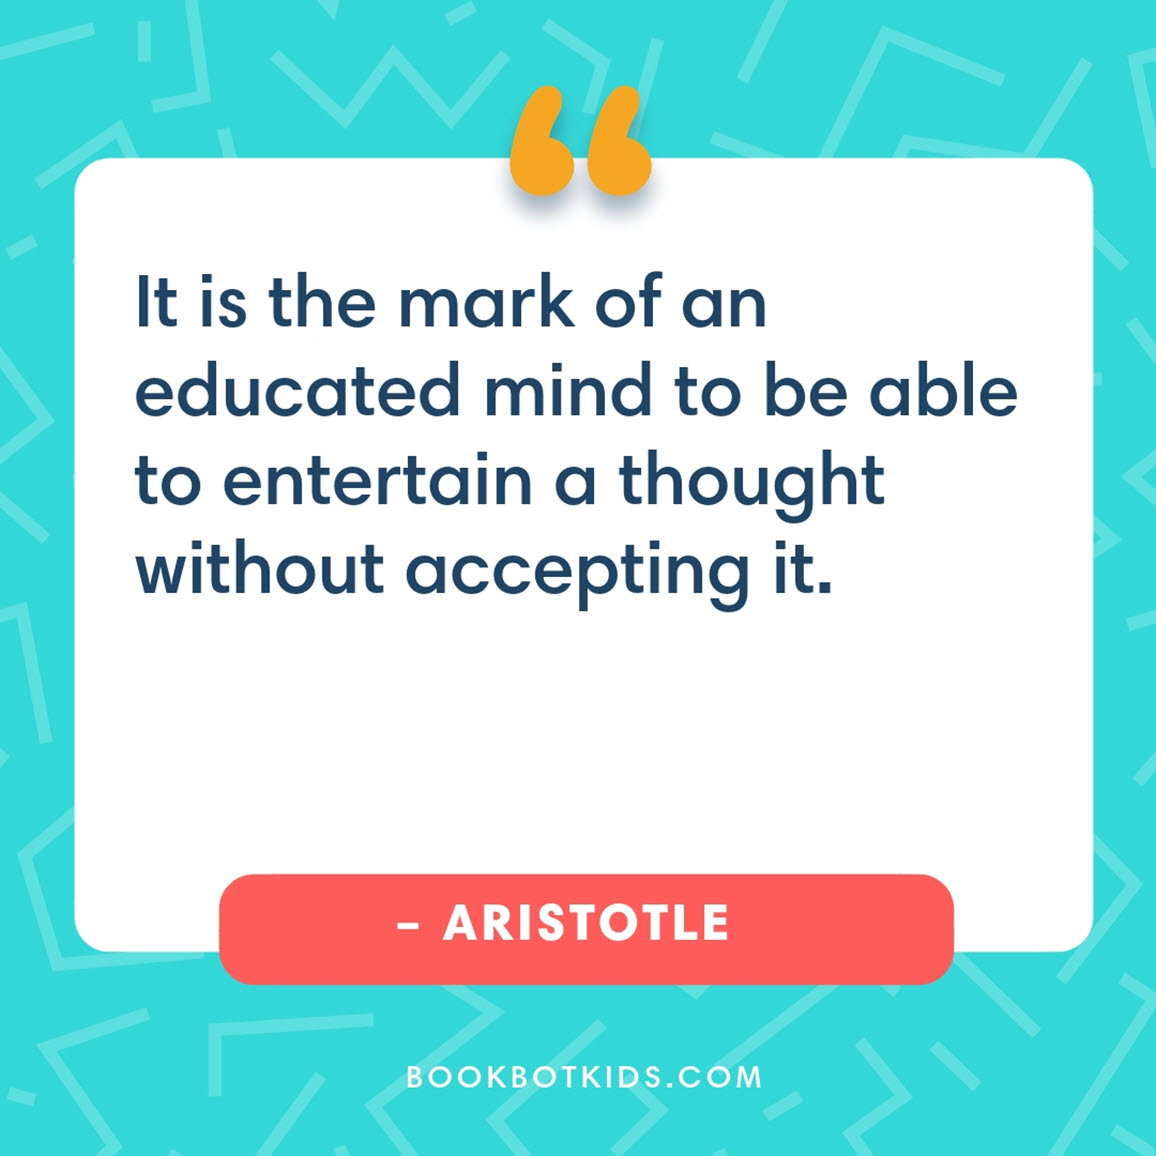 It is the mark of an educated mind to be able to entertain a thought without accepting it. – Aristotle